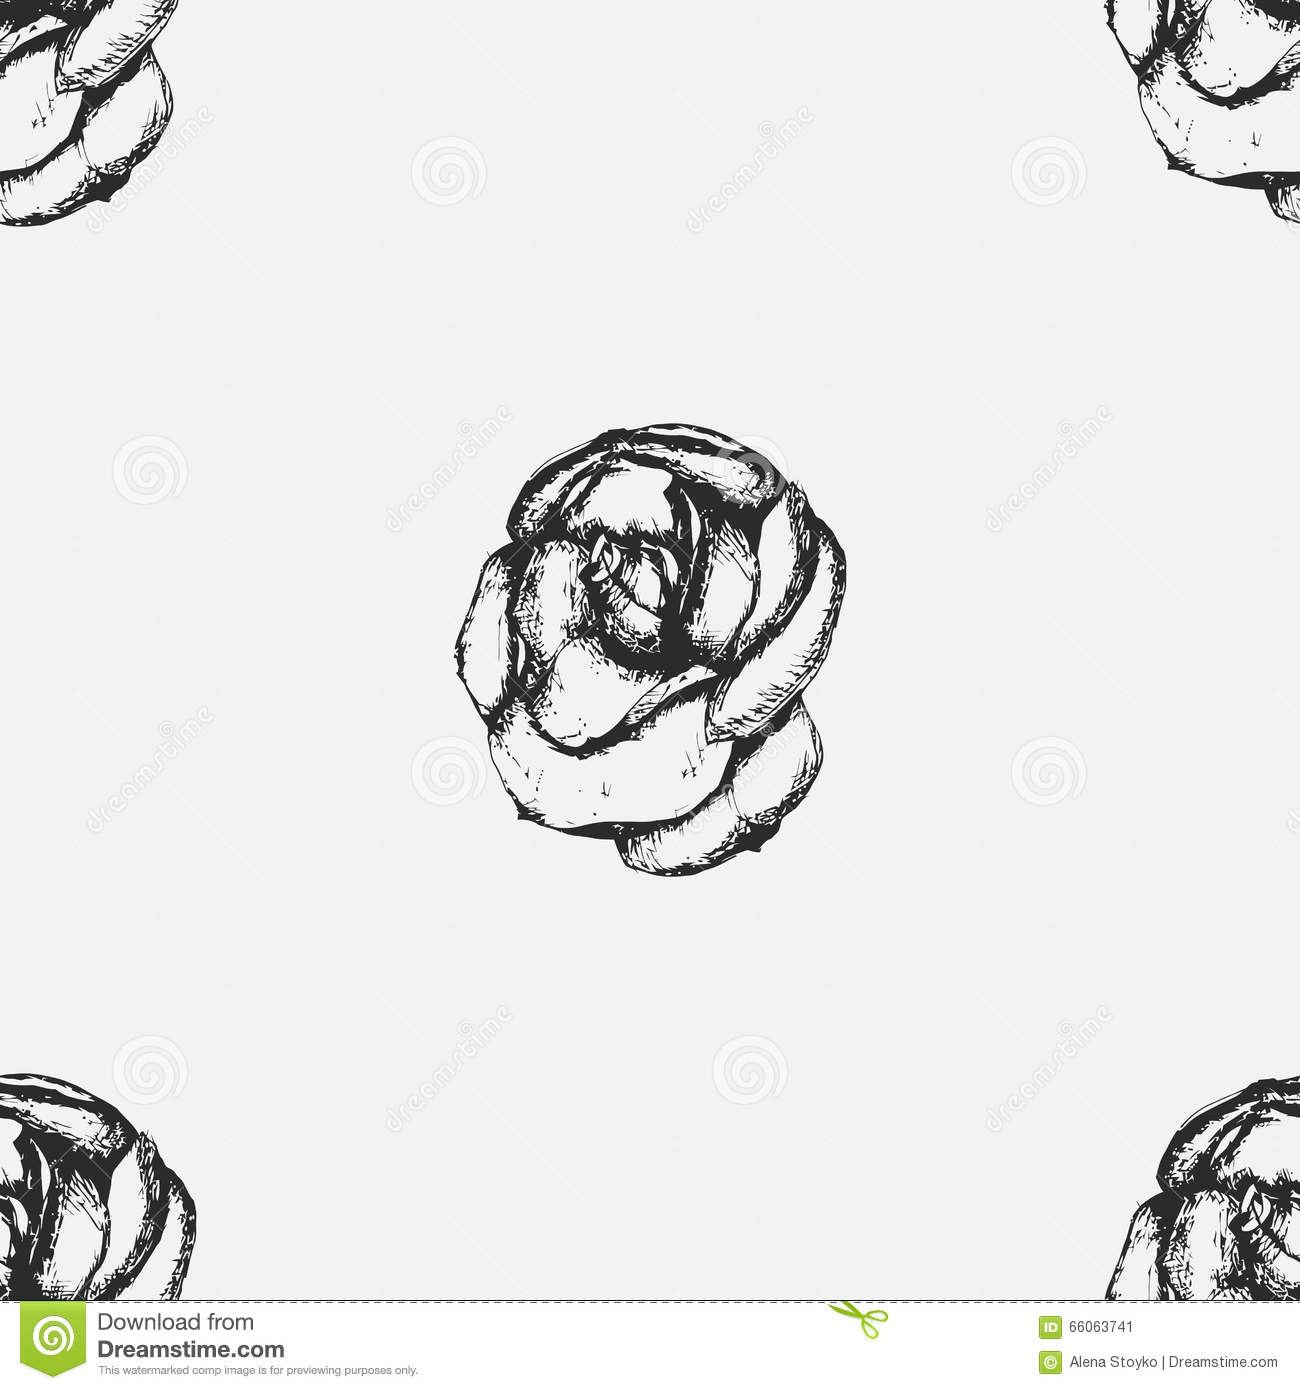 white rose online thesis The white rose the white rose is a story about a group led by hans scholl and his sister sophie, students at a german university who took a stand against their country.